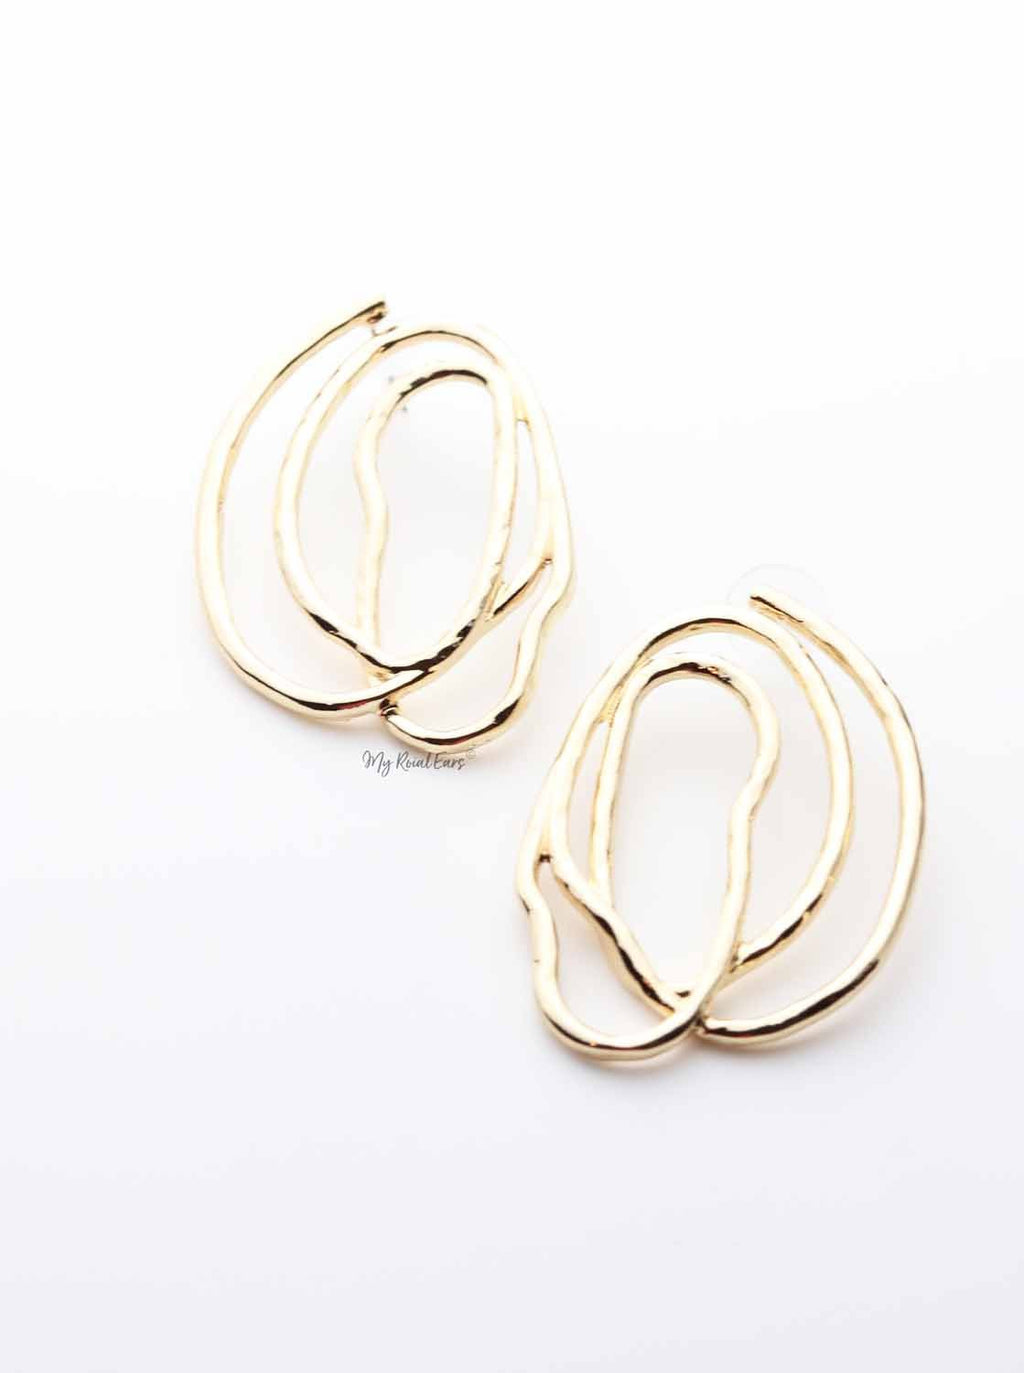 Carissa- impressive abstract statement stud design earrings - My Roial Ears LTD